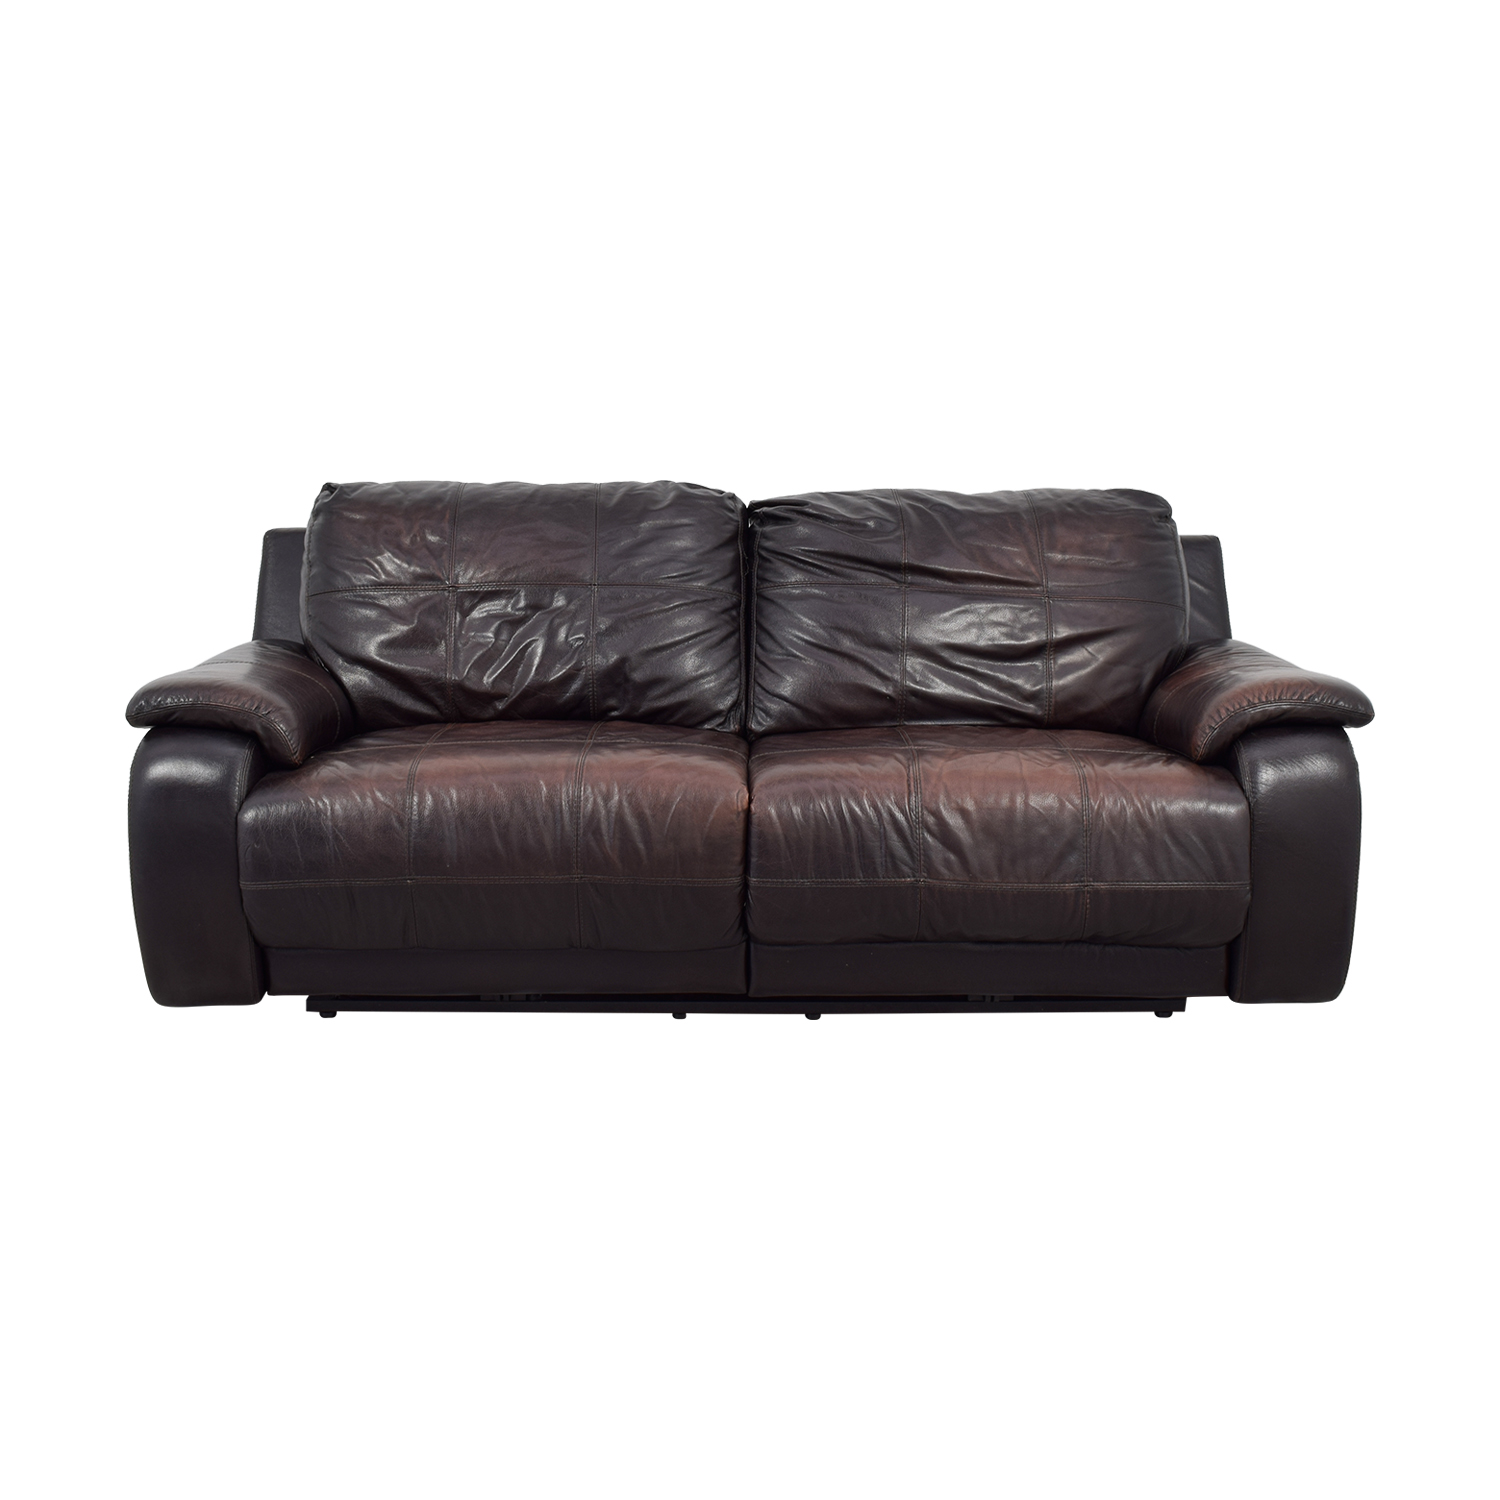 88% OFF - Raymour & Flanigan Raymour & Flanigan Brown Leather Power  Recliner Sofa / Sofas